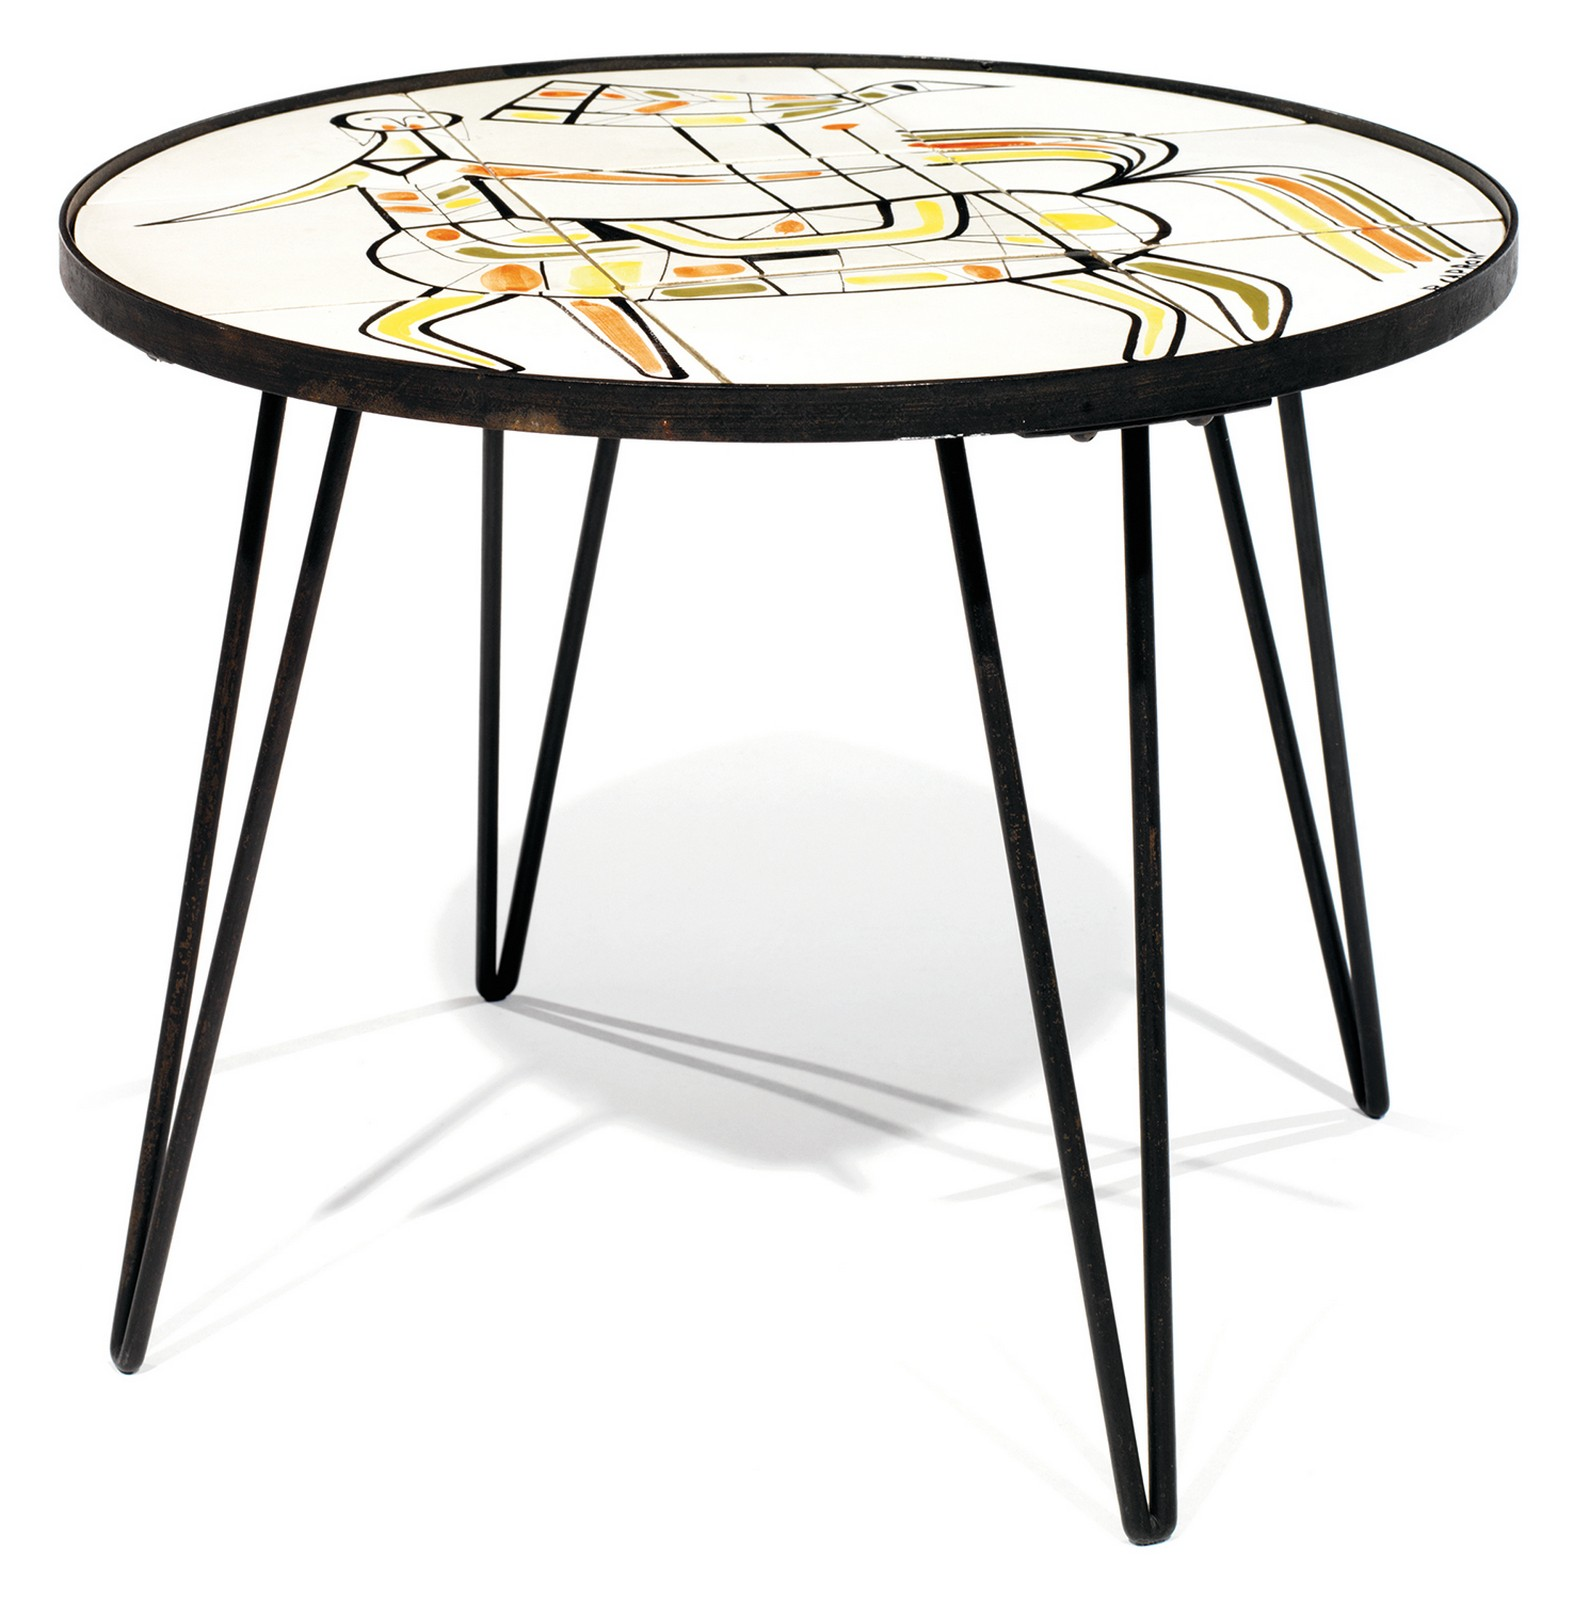 Roger capron 1922 2006 table basse circulaire quadripode structure m talli - Table basse metallique ...